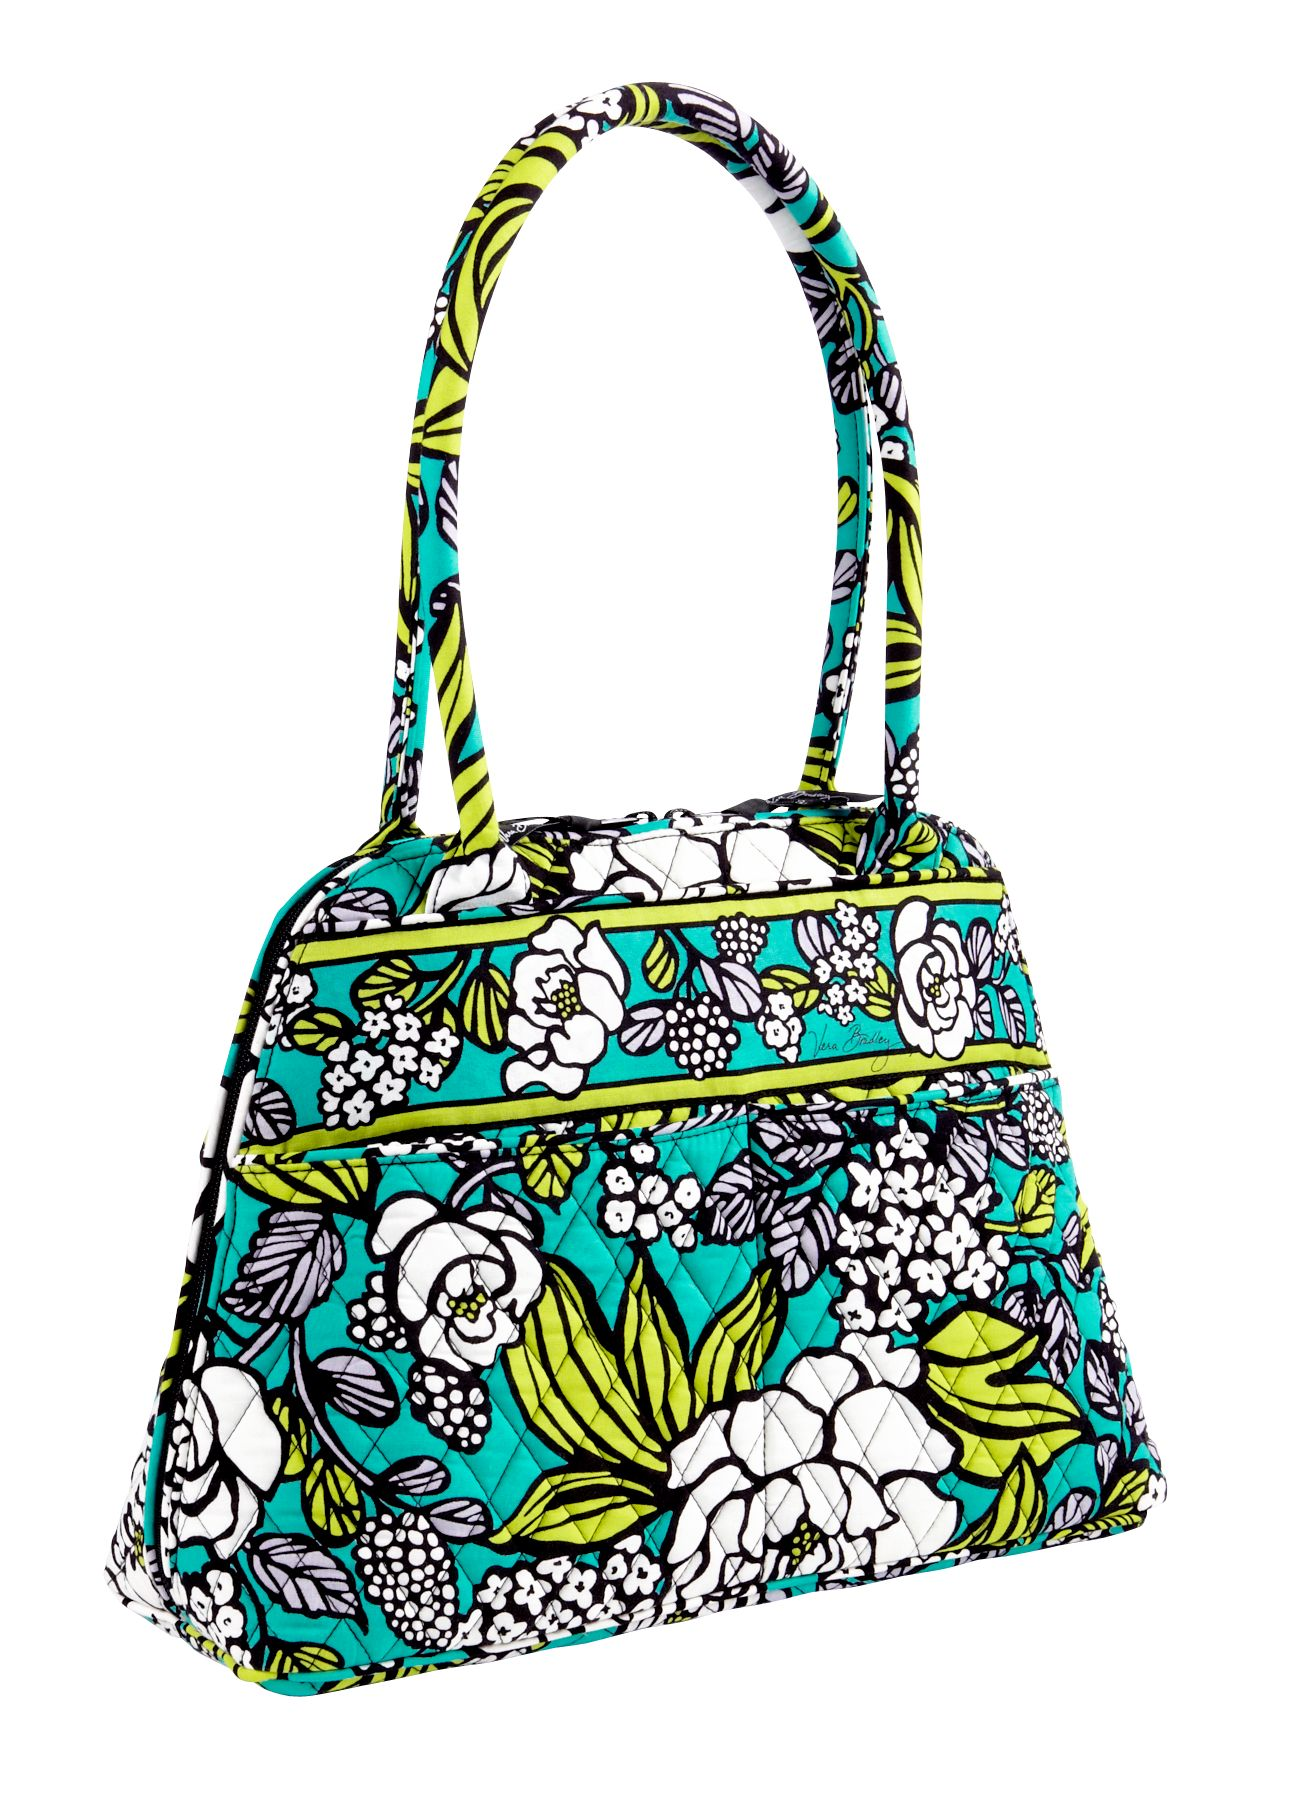 Vera Bradley has set up shop on eBay! Lots of brands have eBay stores and now so does one of our favorites. Vera Bradley will be having a 2 day sale with all kinds of items from wallets to suitcases.